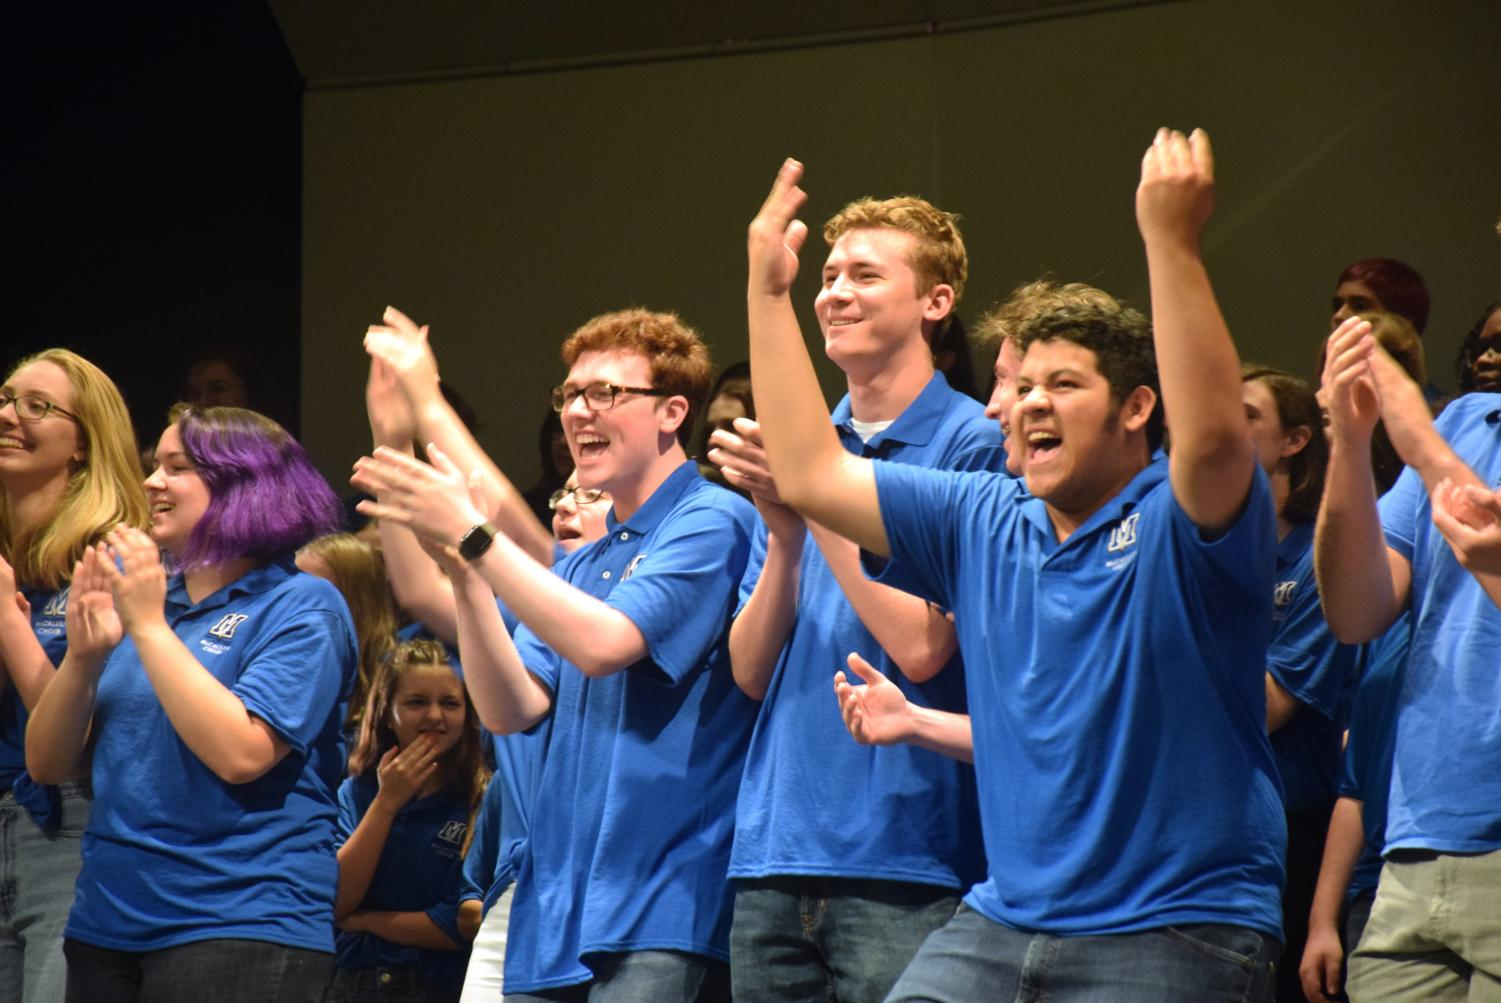 Seniors Tryston Davis (left) and Wilson Caballero (right) cheer on McCallum Choir alumni as they join the current choir onstage. At the end of the last concert, former Mac choir members are invited to sing